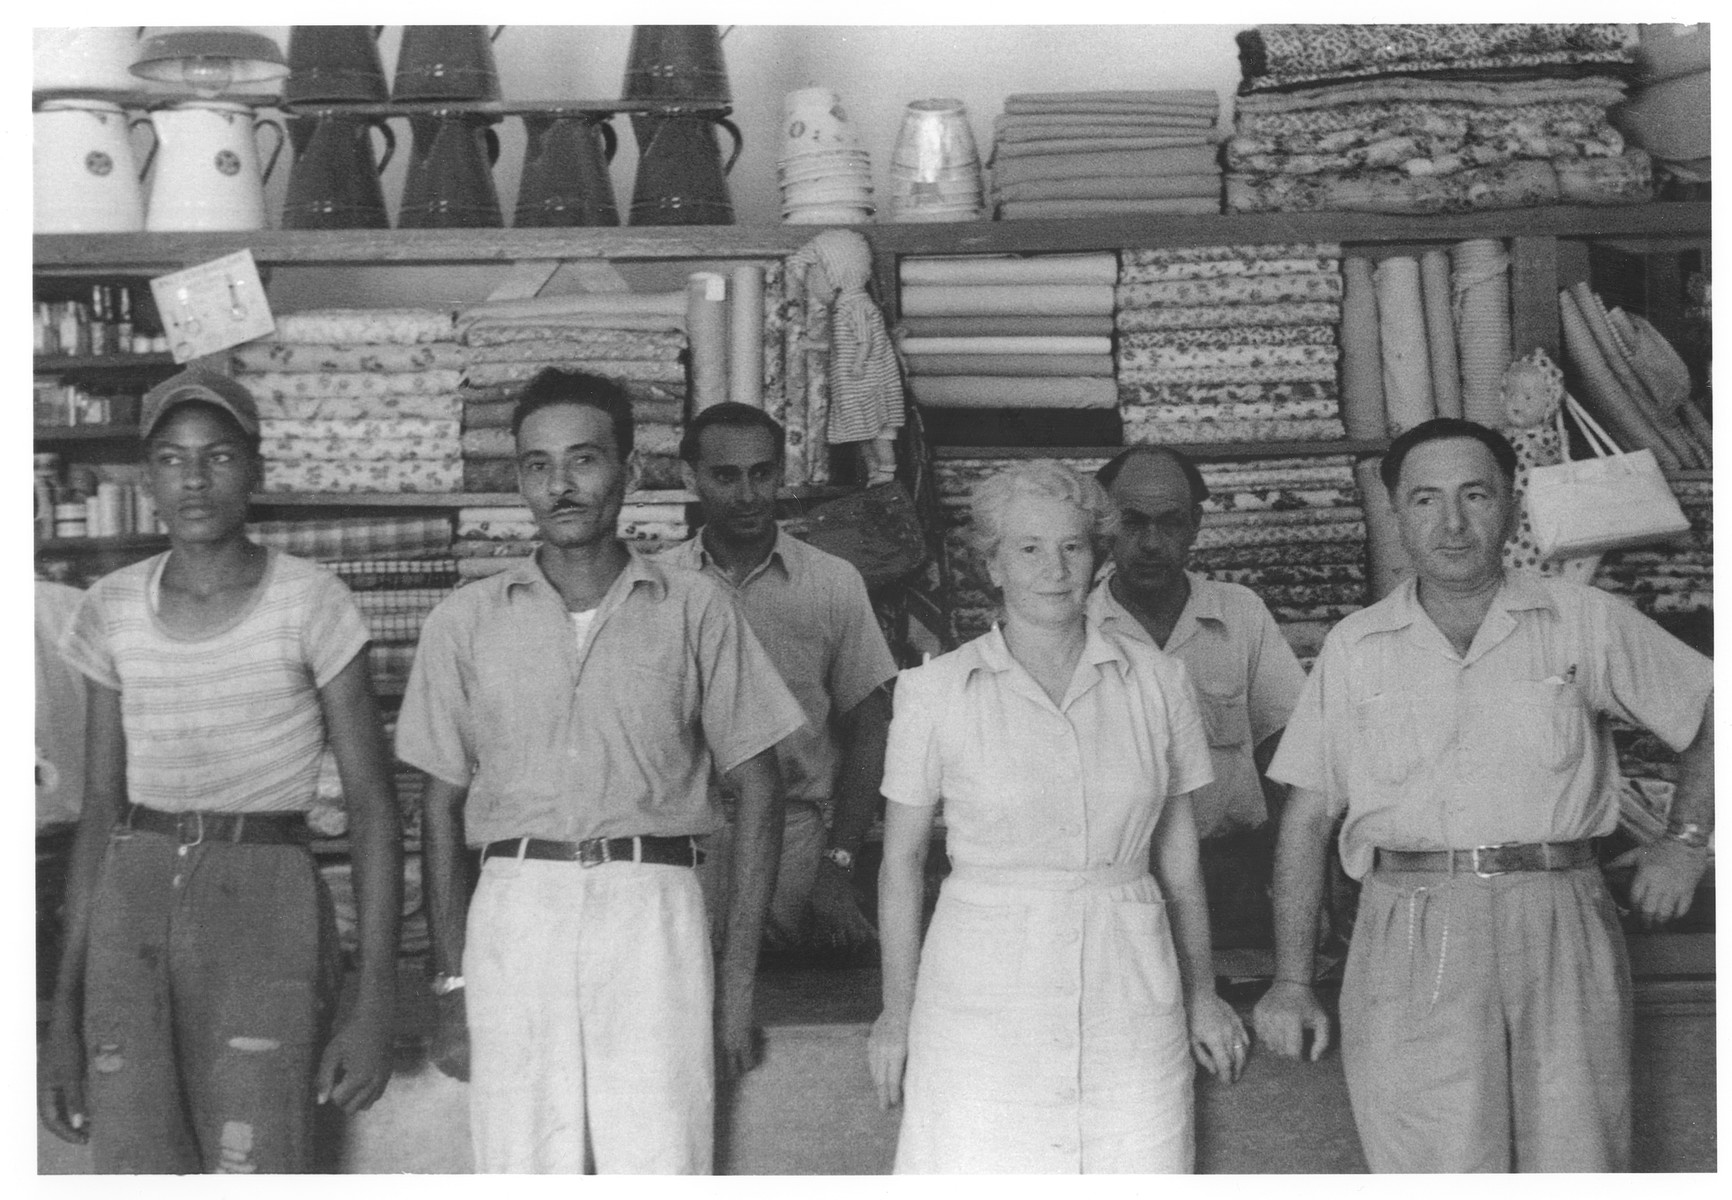 Group portrait of the staff of the El Colmado general store in Sosua.  In the first row (from left to right) are Jose Mena, Kaethe Kohn and either Mr. Strauss or Mr. Levy.  In the back row are Otto Kilbel and Pepi Mingelgruen.